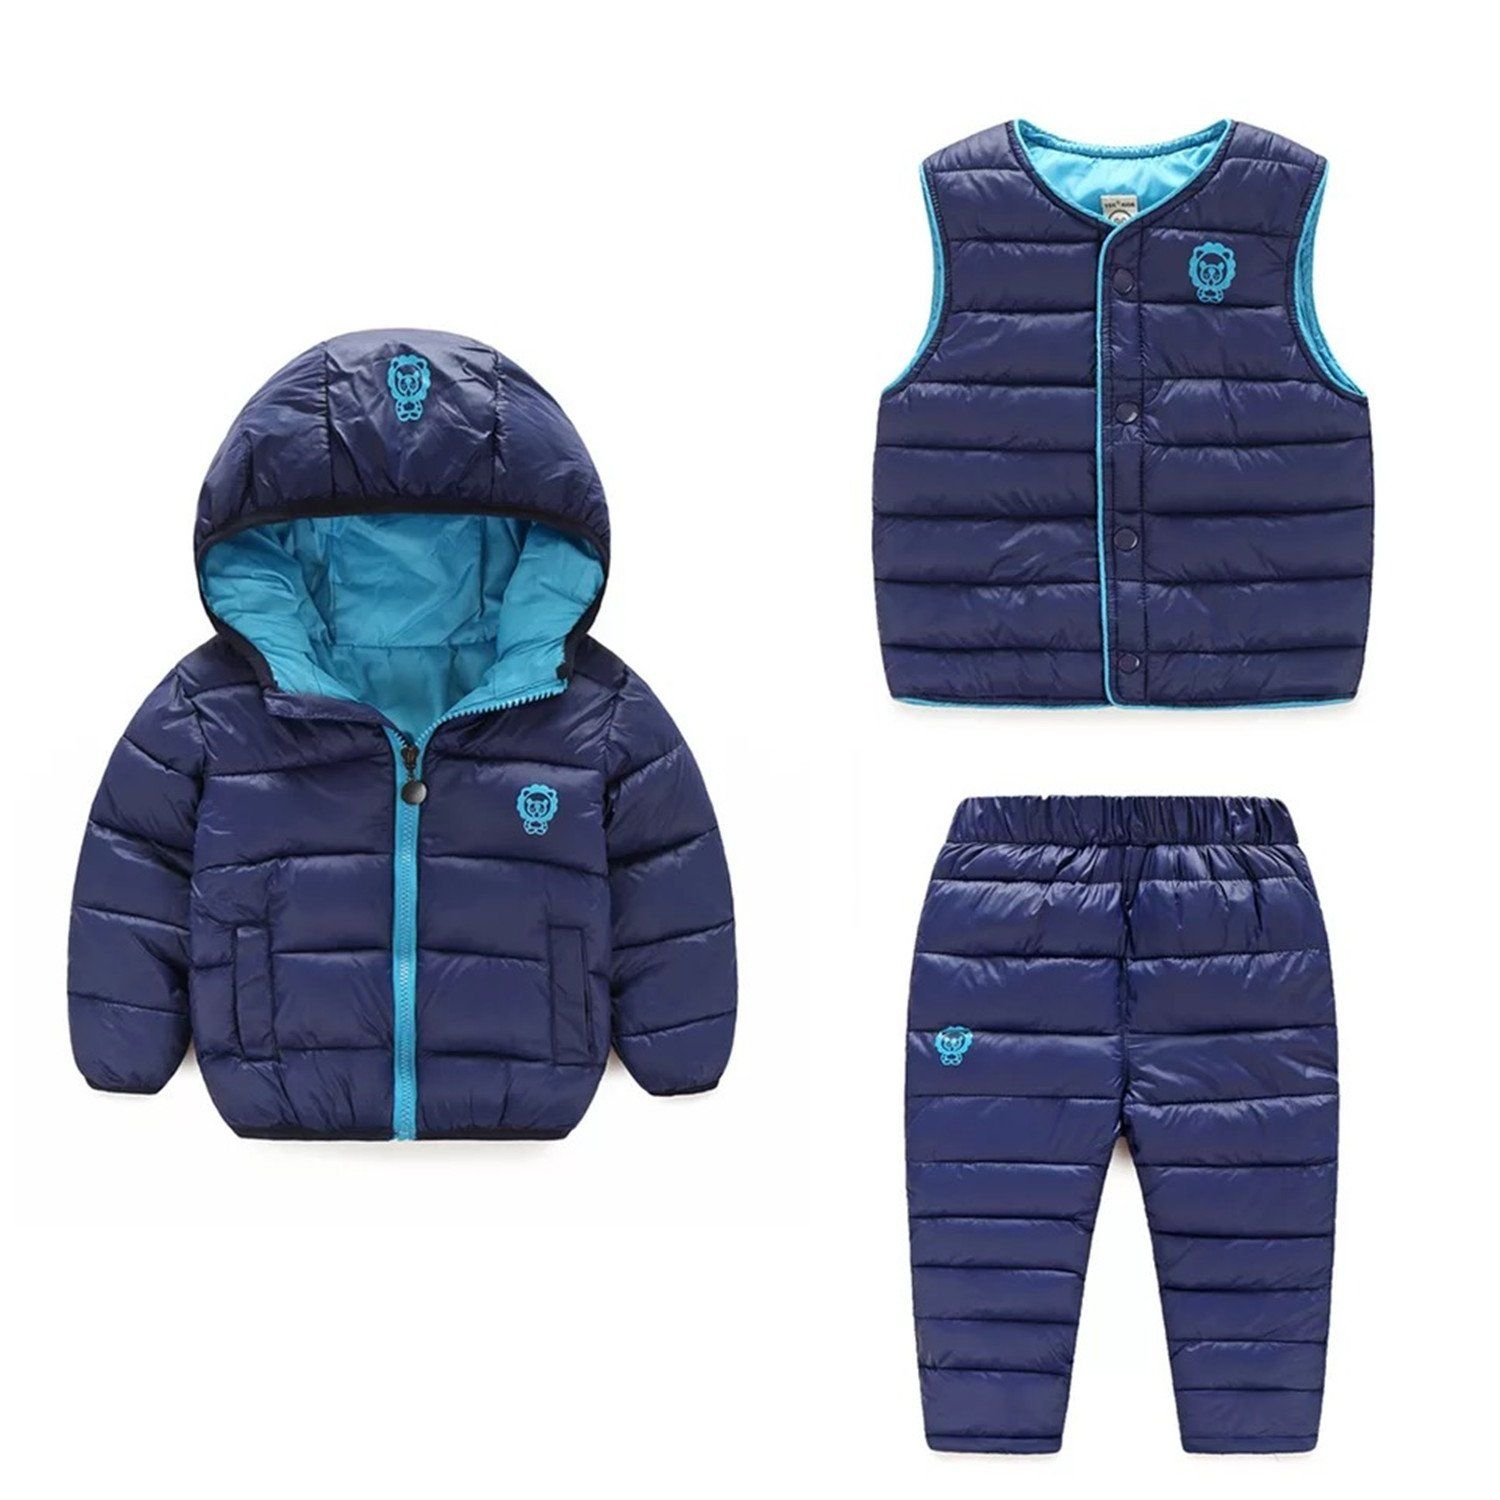 65c0ee526c6a6 Baby Boys Girls Winter Warm Pants   Jackets  Vests Clothes Sets Children  Down Cotton padded Snowsuits